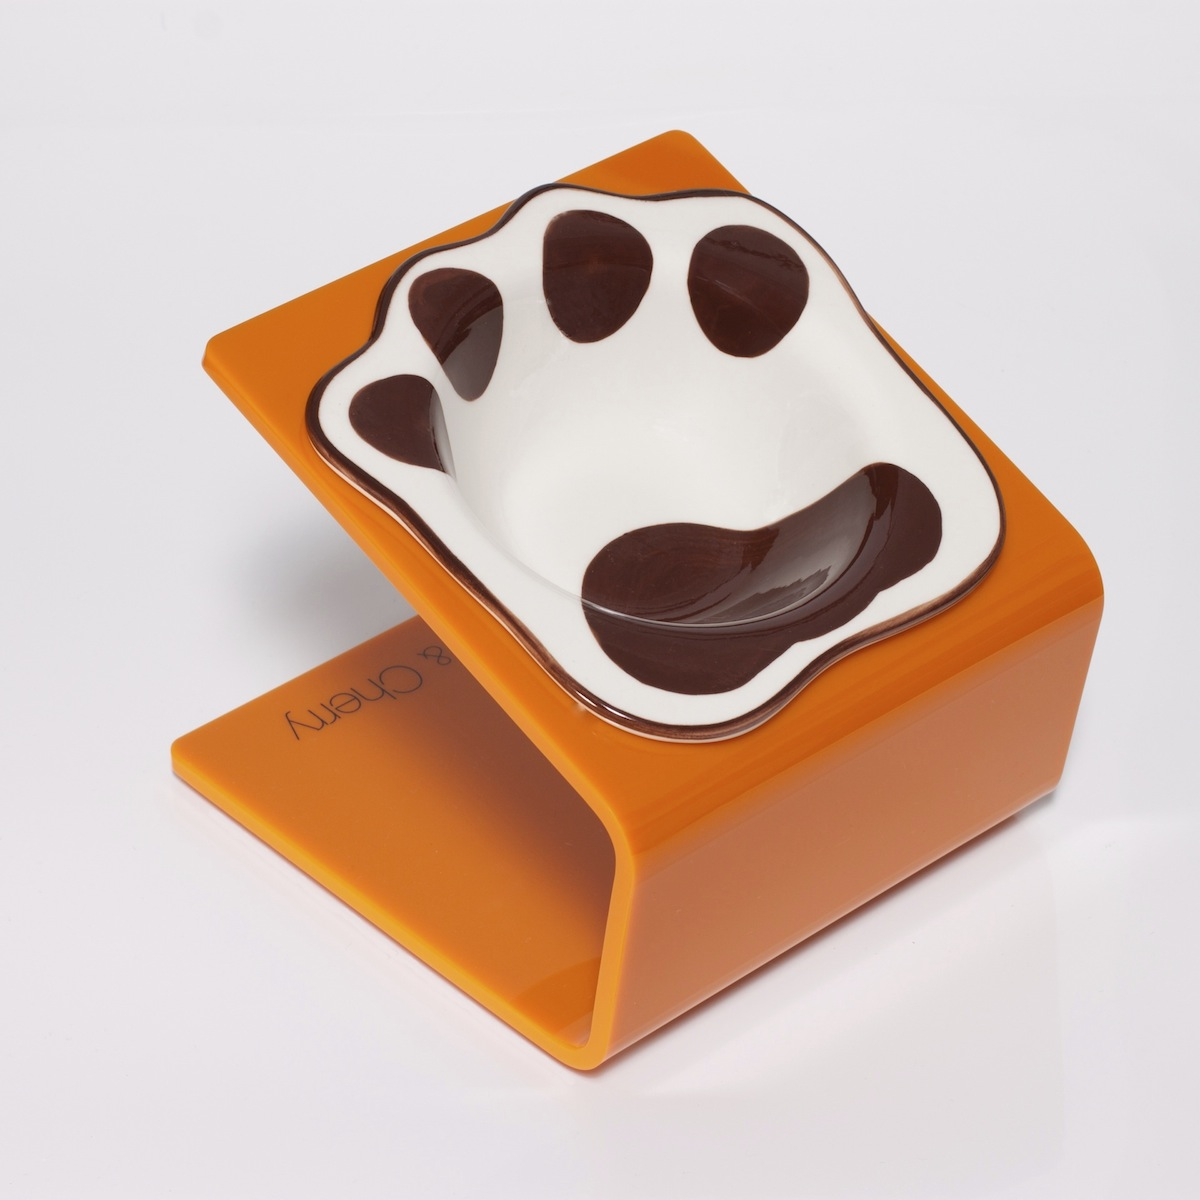 Charming Elevated Dog Bowls for Best Dog Bowl Ideas: Ceramic Raised Dog Bowls | Outdoor Automatic Dog Feeder | Elevated Dog Bowls